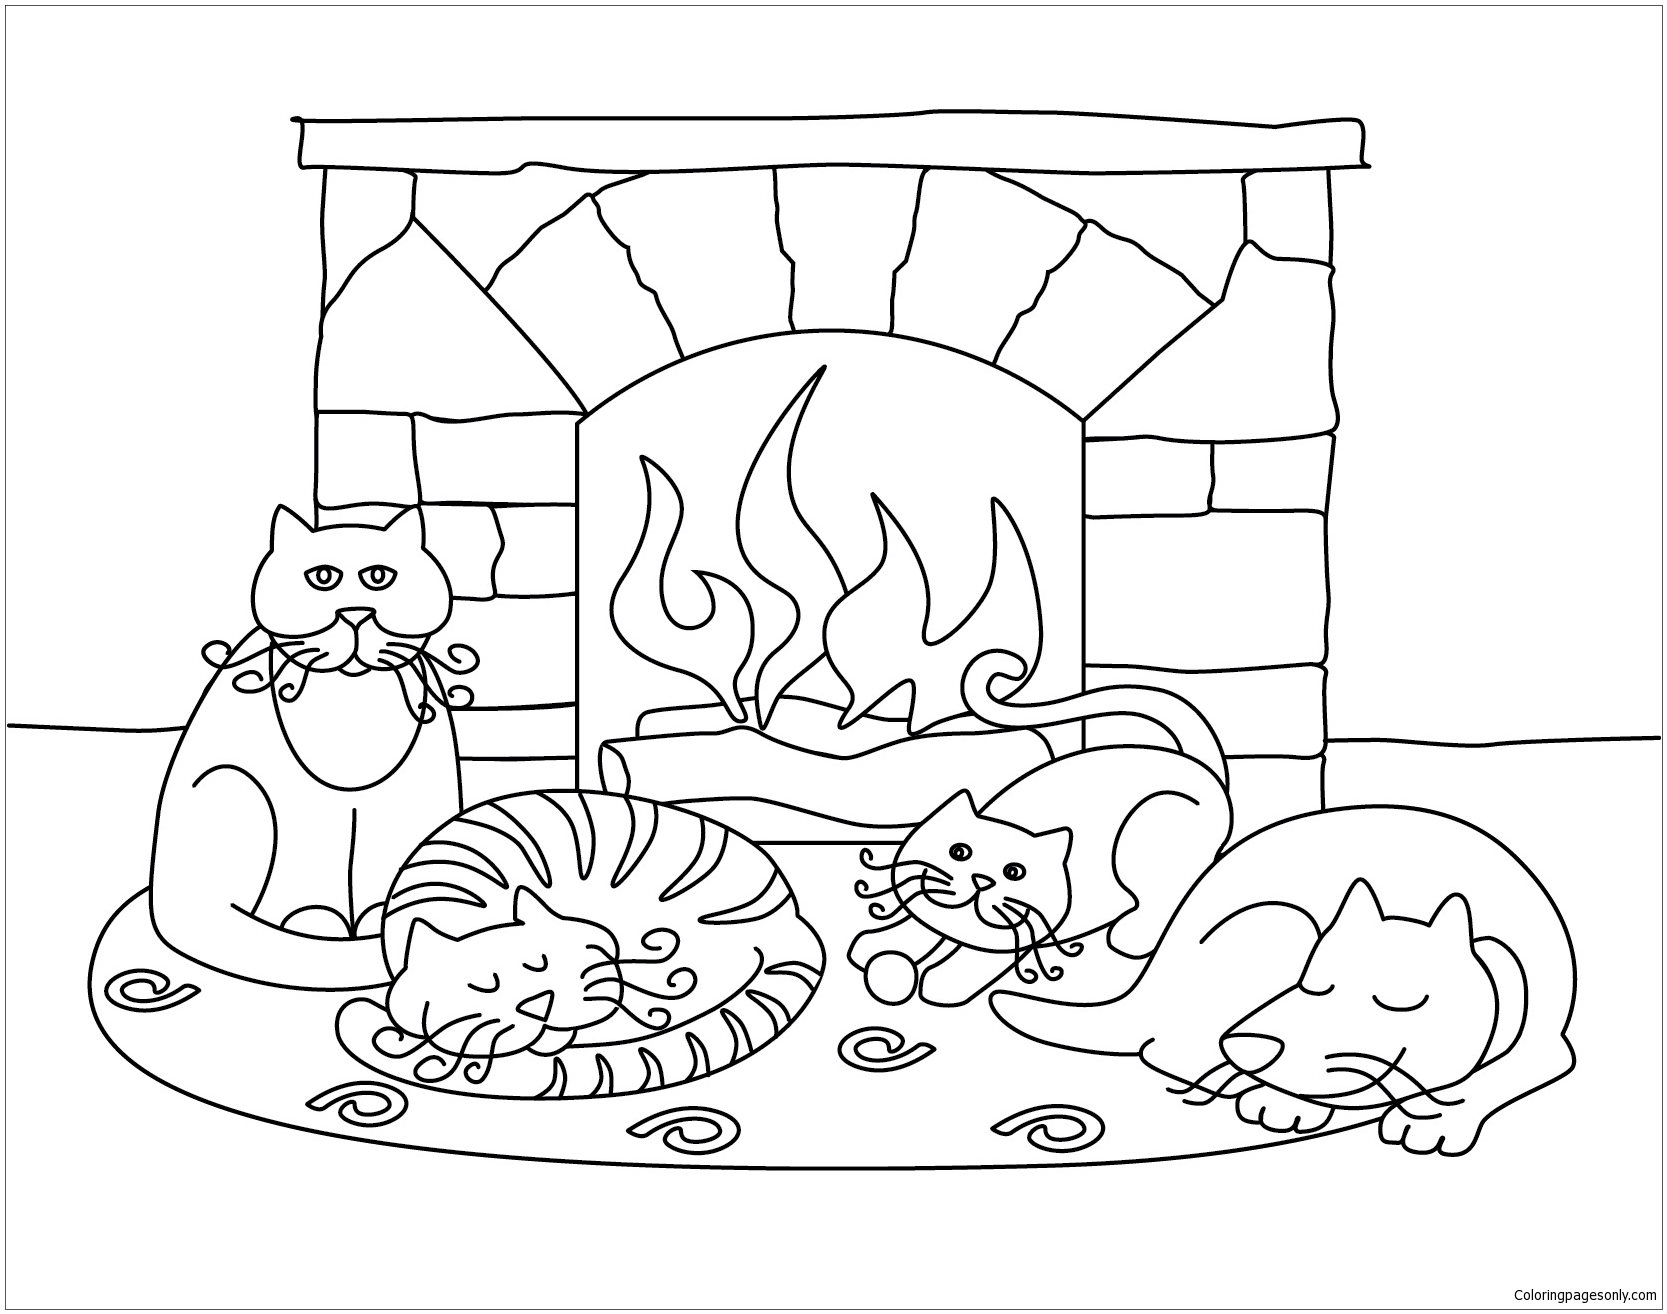 Winter Scenes With Cute Animals Coloring Page - Free ... | coloring sheets winter animals